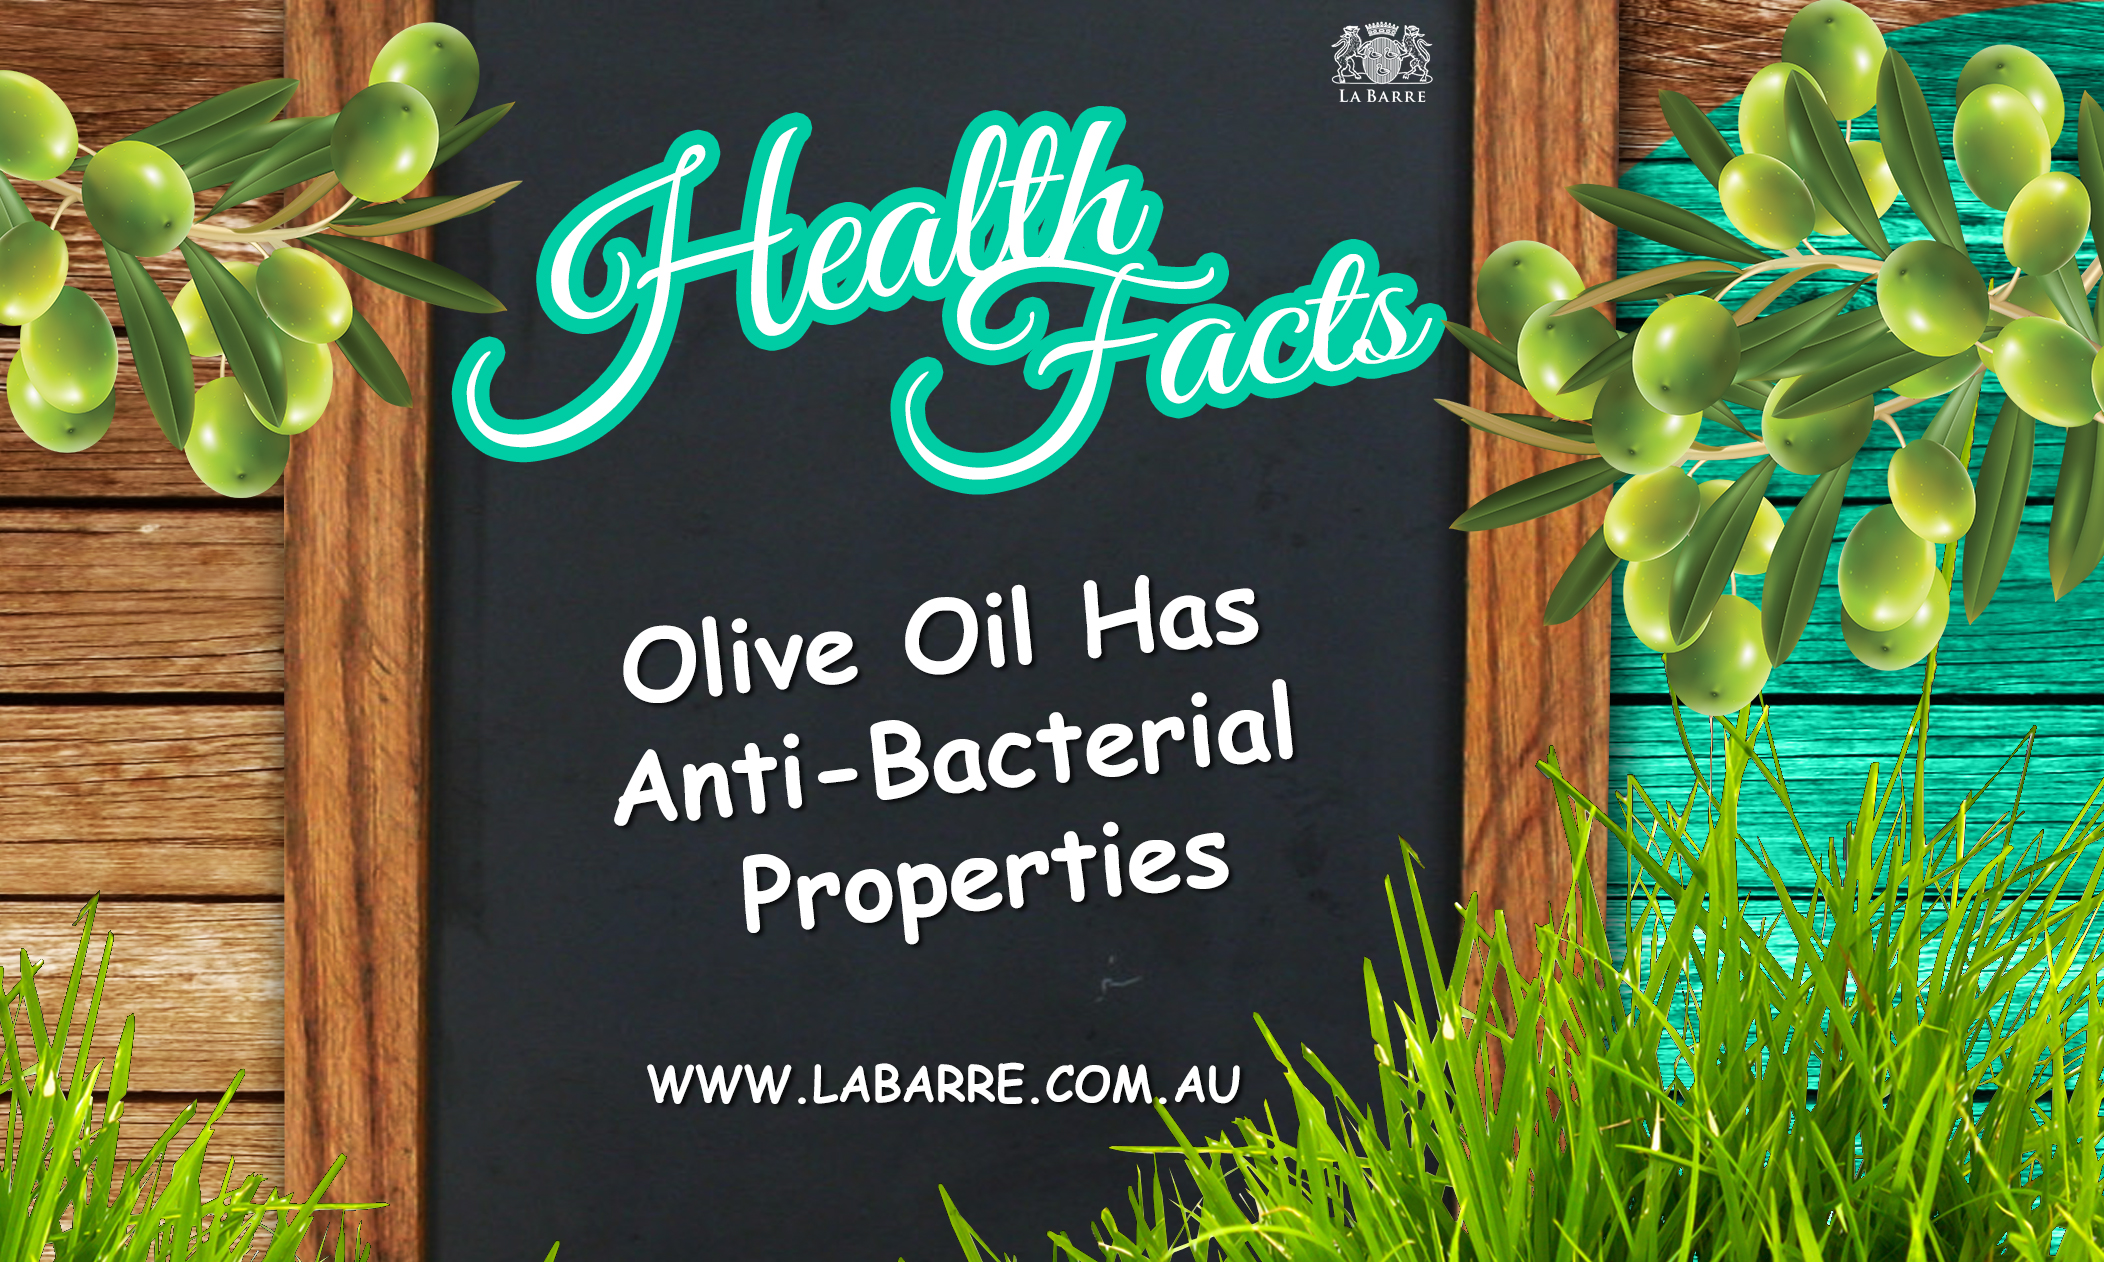 olive oil health facts 2